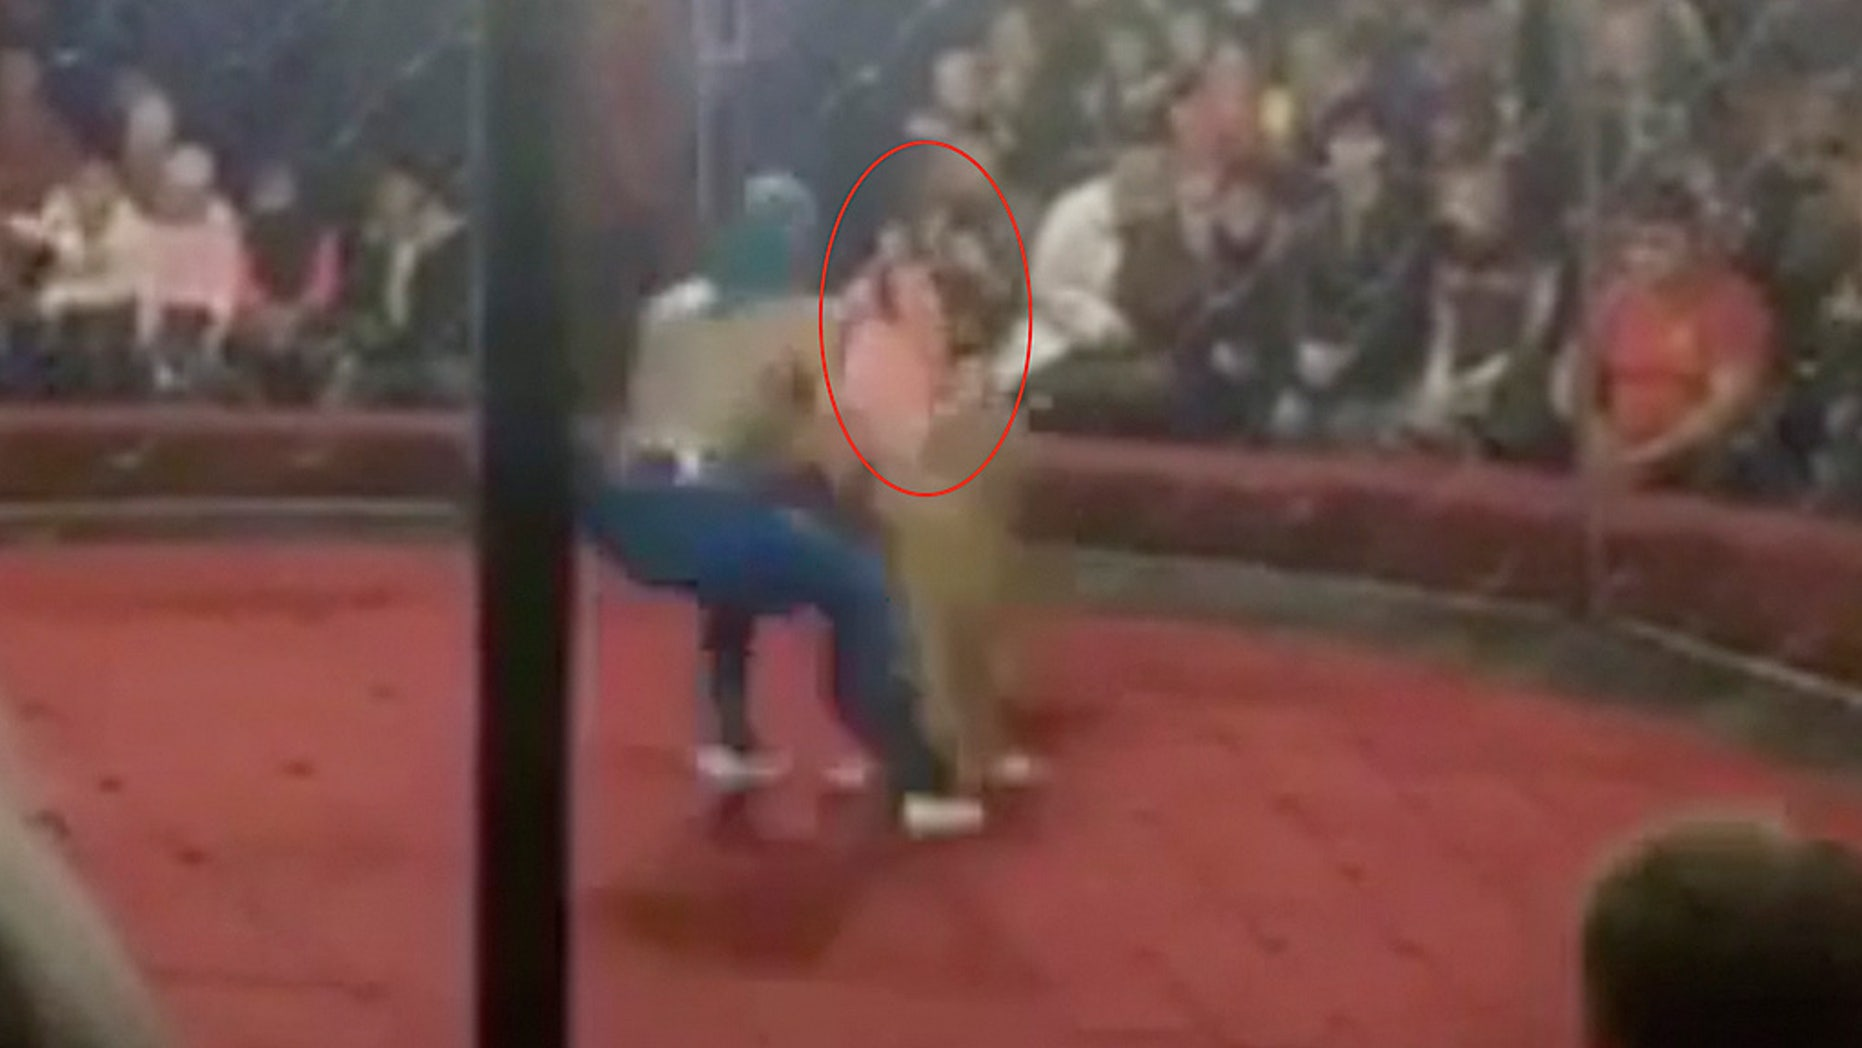 A lion at a circus in theKrasnodar region of Russia broke free and bit the girl's face, a medical responder says.